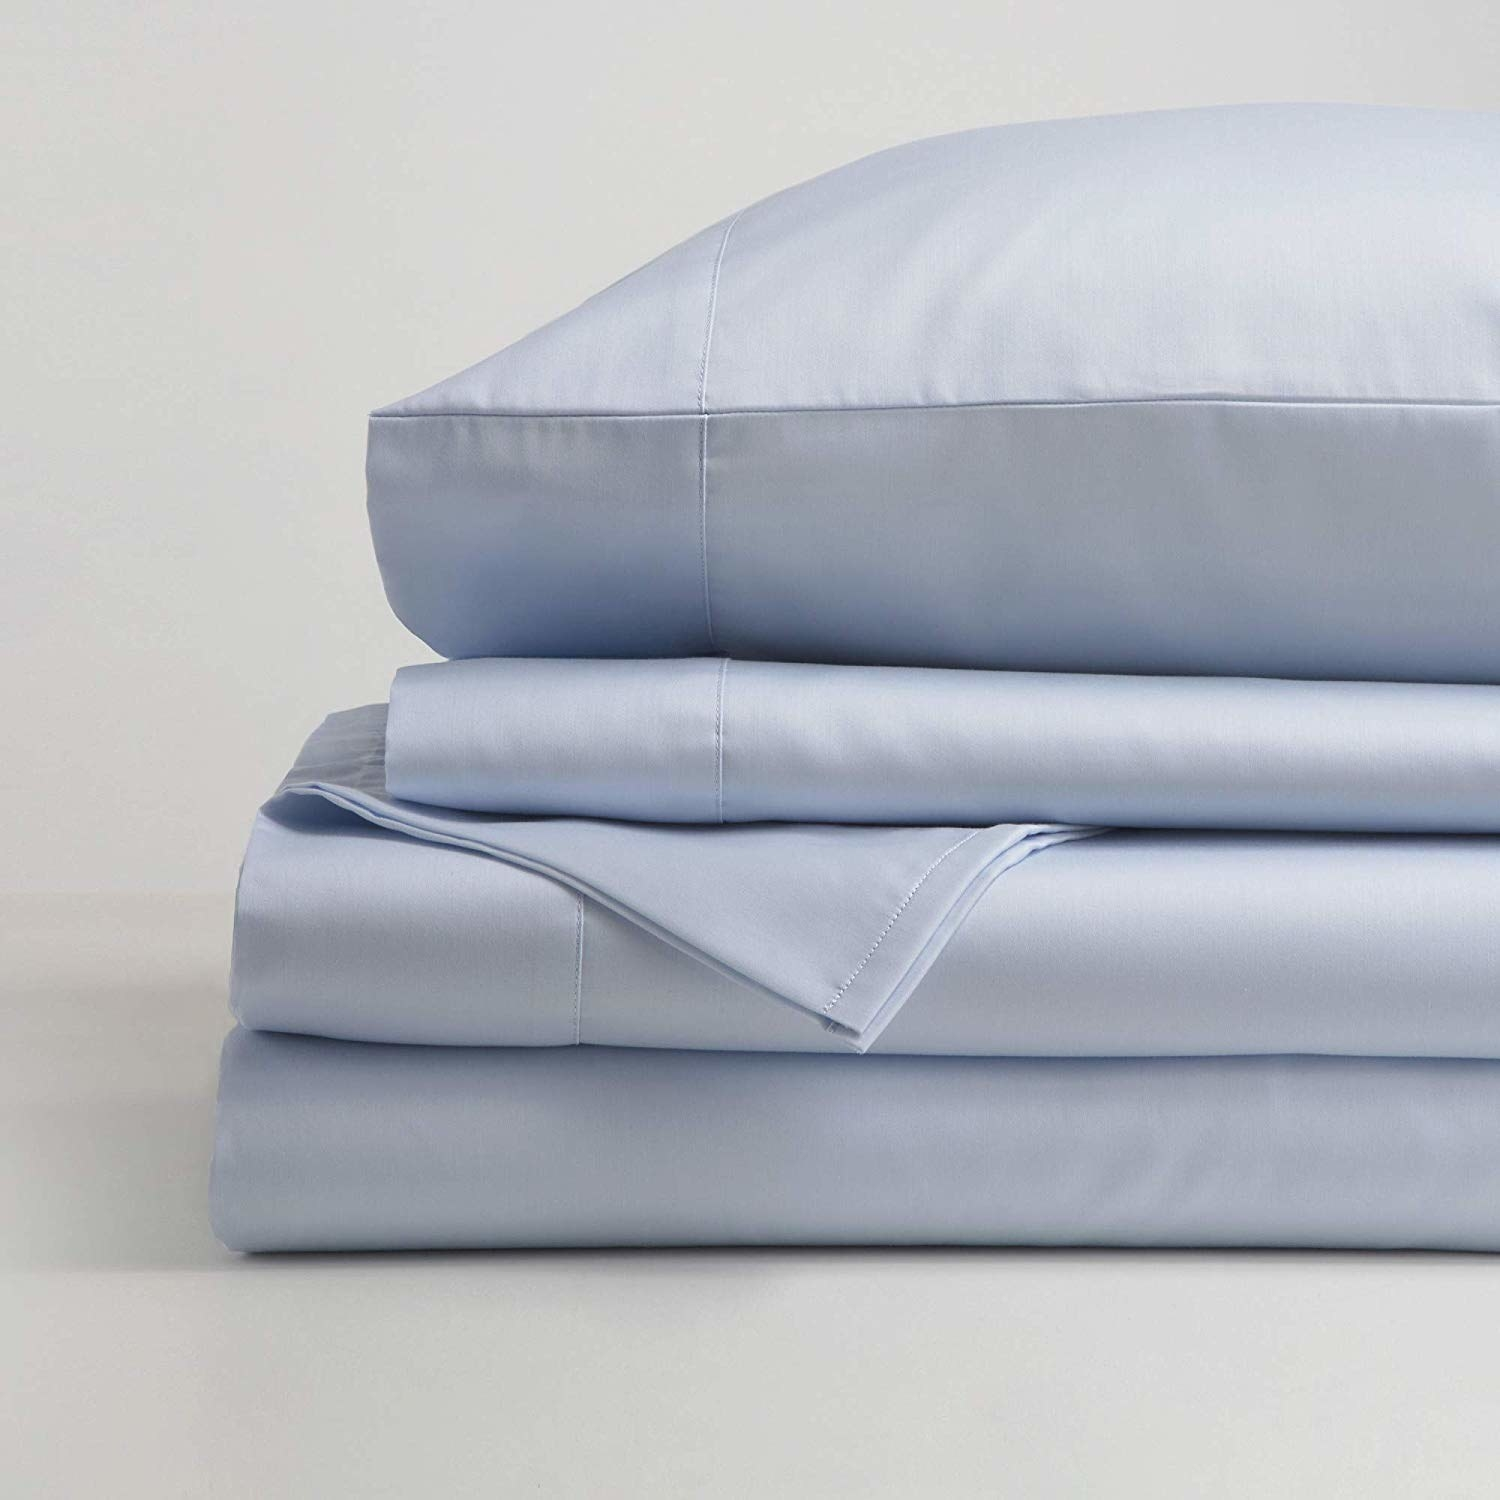 the sheets in light blue